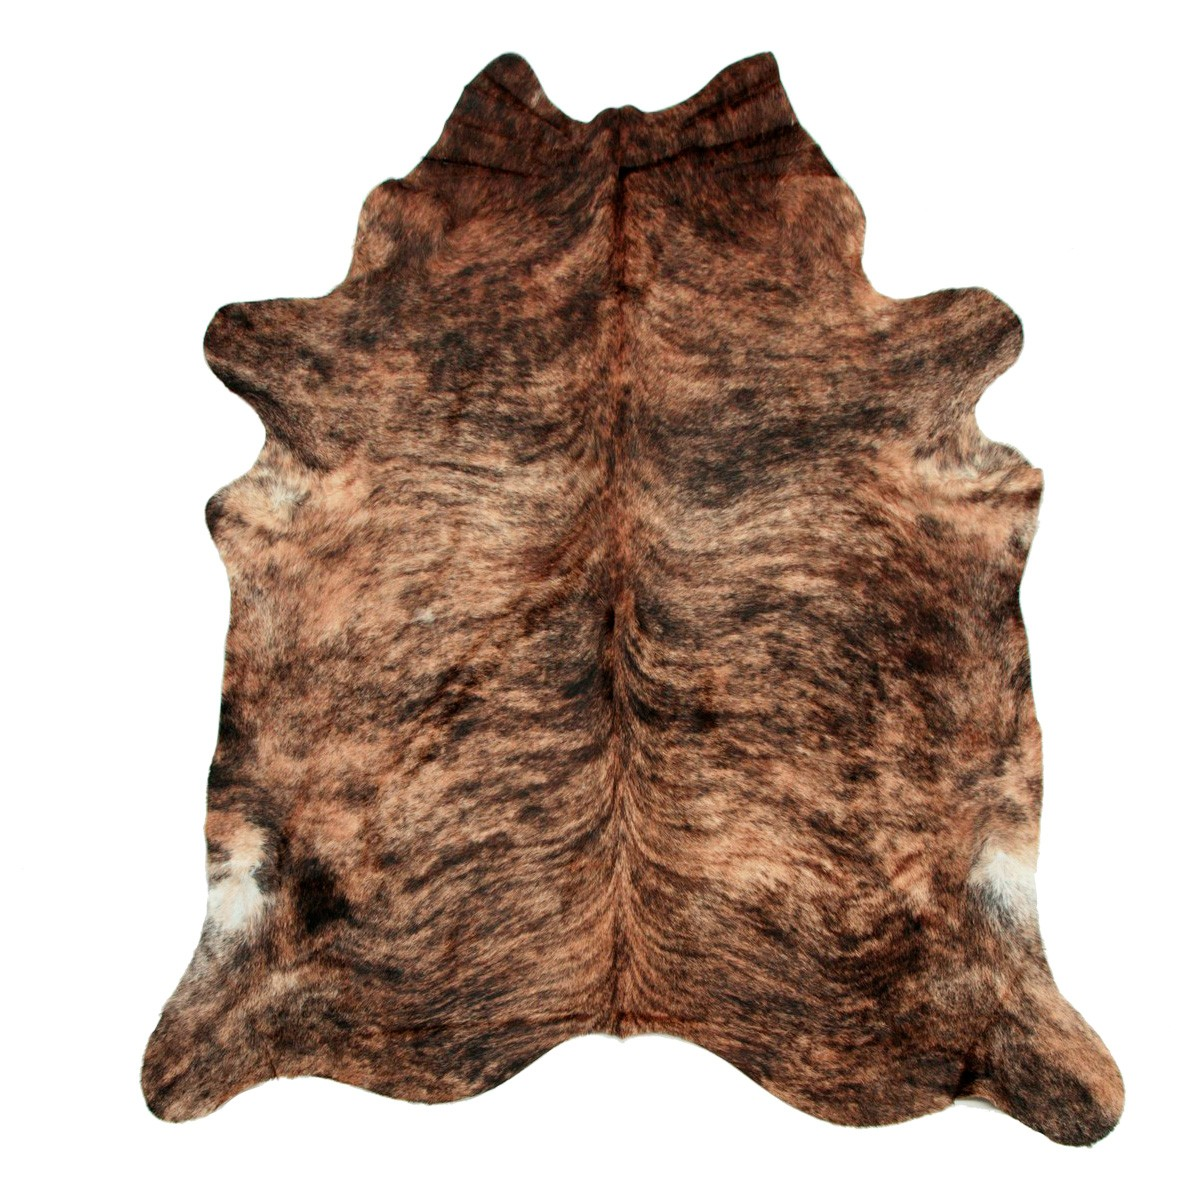 Jose 367 Brazilian Natural Cowhide Rug, 220x240cm